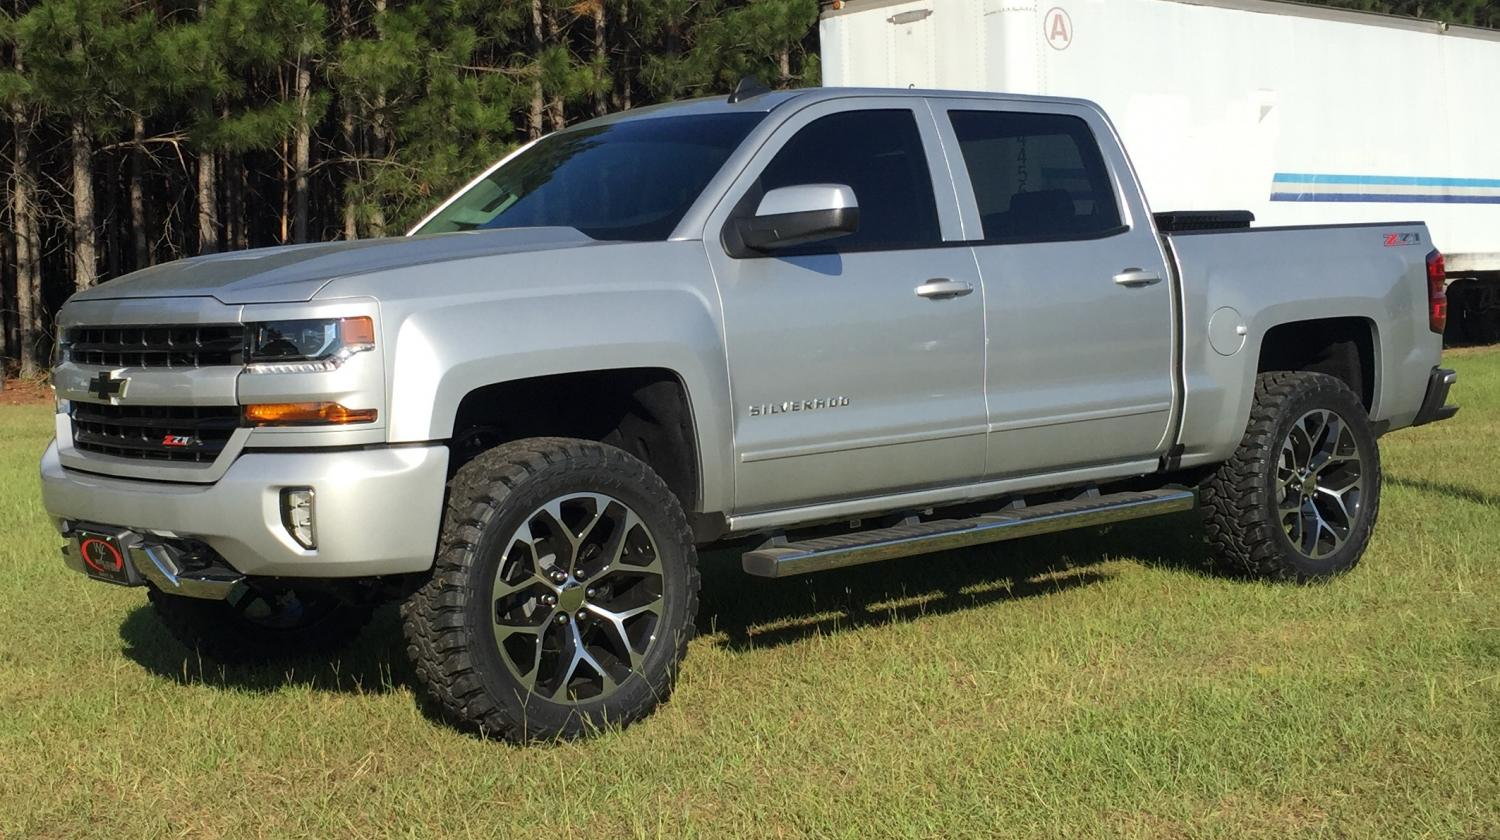 155174 My 2014 Updated Mods N Stuff in addition 193126 2017 Air Dam Removal moreover 2005 Chevrolet Silverado 1500 in addition 16756 How Replace Fuel Filter 2 together with 163 1312 2014 Chevrolet Silverado Z71 Double Cab 4x4 First Test. on 2014 chevy colorado crew cab 4x4